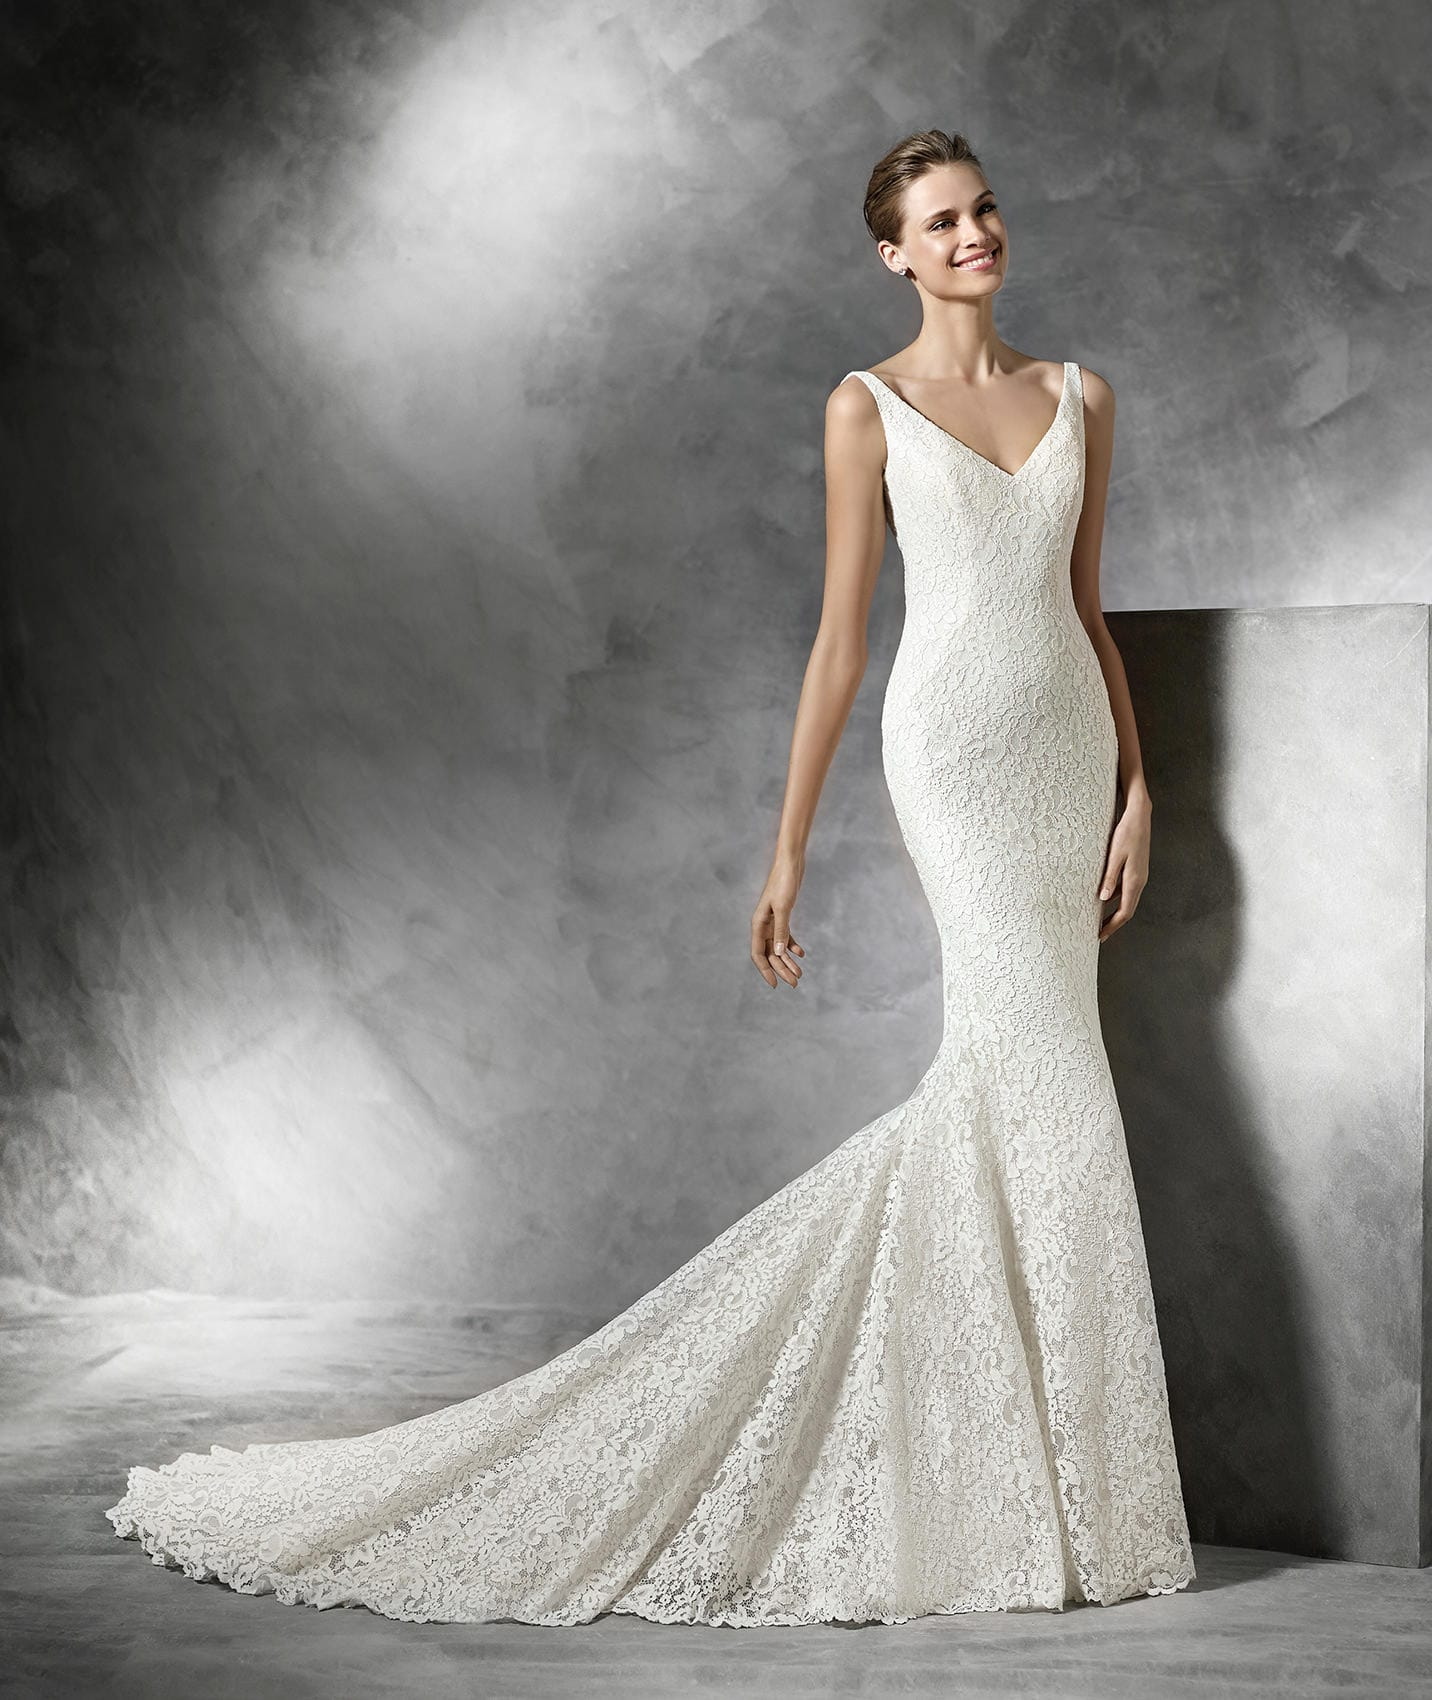 Pronovias maricel sell my wedding dress online sell my for Where to sell wedding dresses